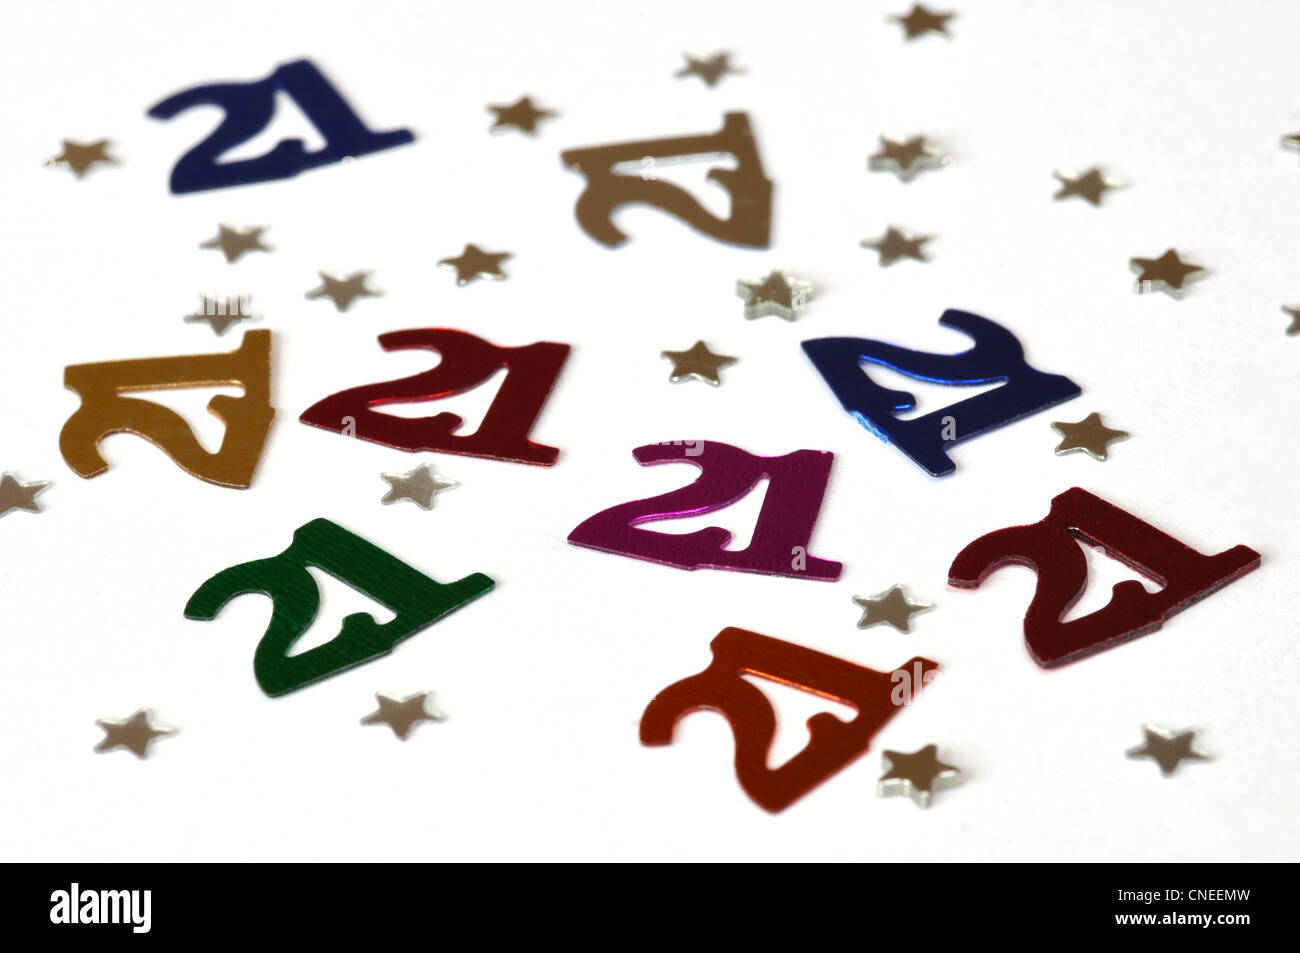 Birthday decorations showing glitter for a 21 year birthday - Stock Image